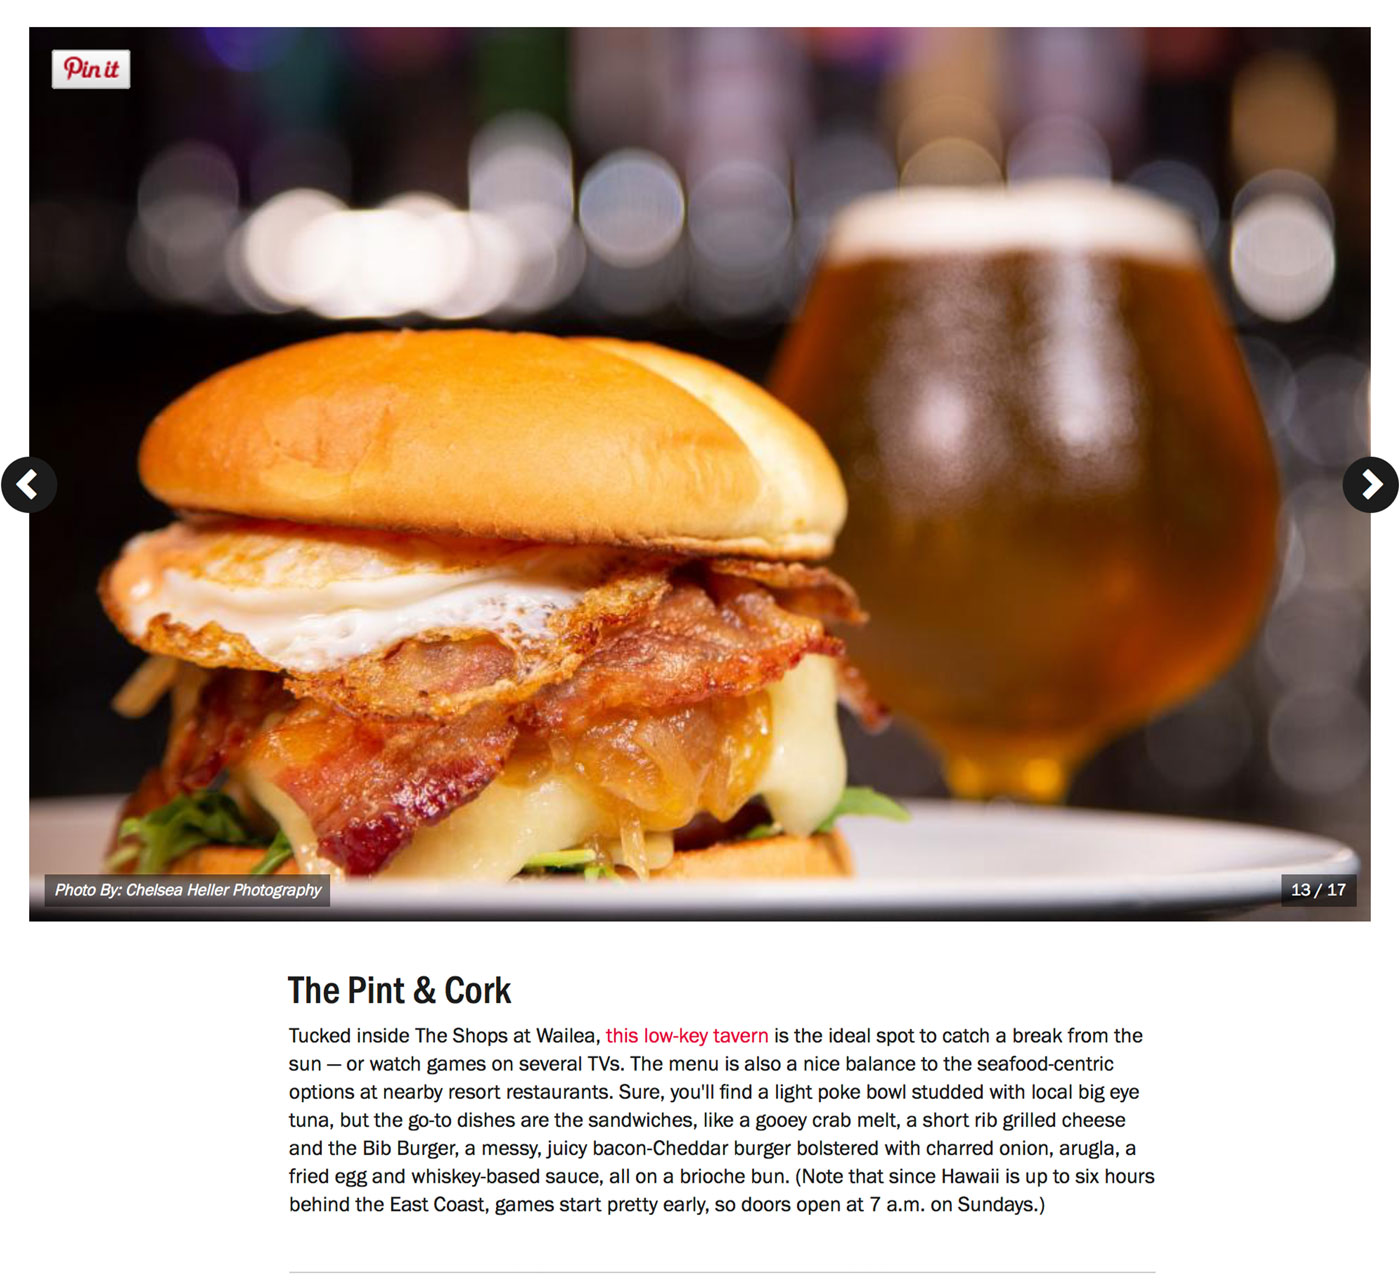 "Screenshot from Food Network's Guide to:<br><a href=""https://www.foodnetwork.com/restaurants/photos/restaurant-guide-maui"" target=""_blank"" rel=""noopener noreferrer"">""The Best Restaurants on Maui""</a> - The Pint & Cork.</br>"